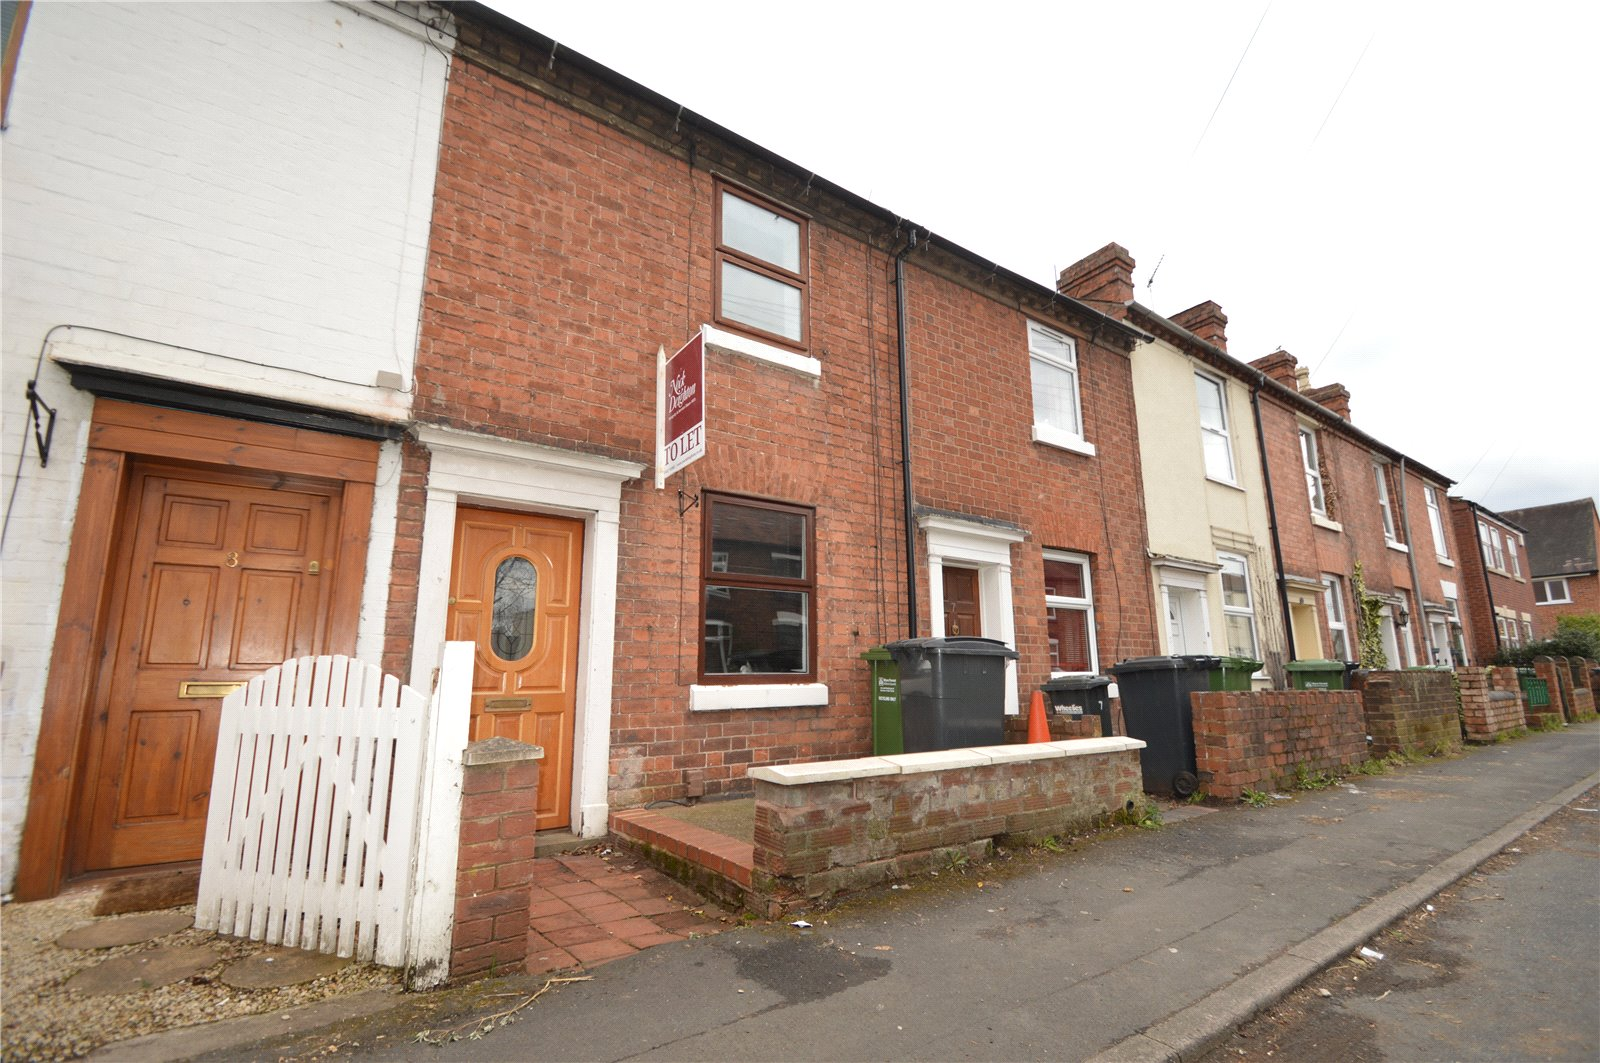 2 Bedrooms Terraced House for rent in 5 Villiers Street, Kidderminster, Worcester, DY10